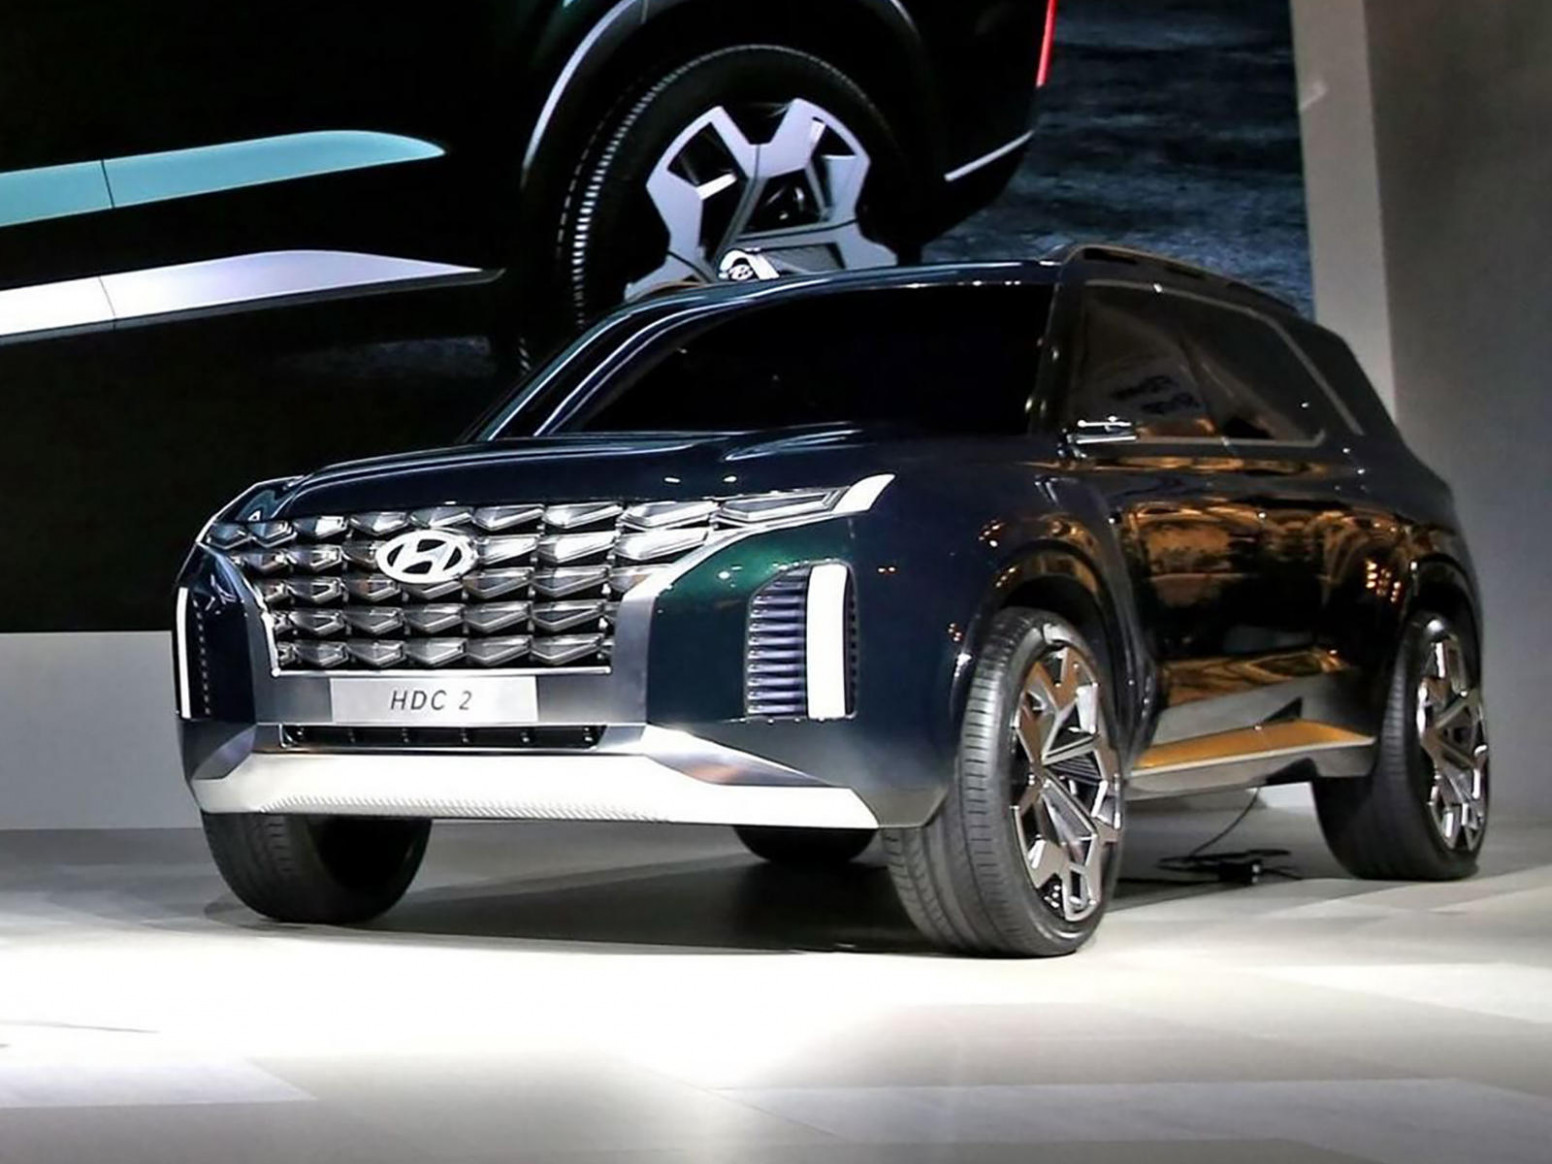 Reviews When Will The 2022 Hyundai Palisade Be Available